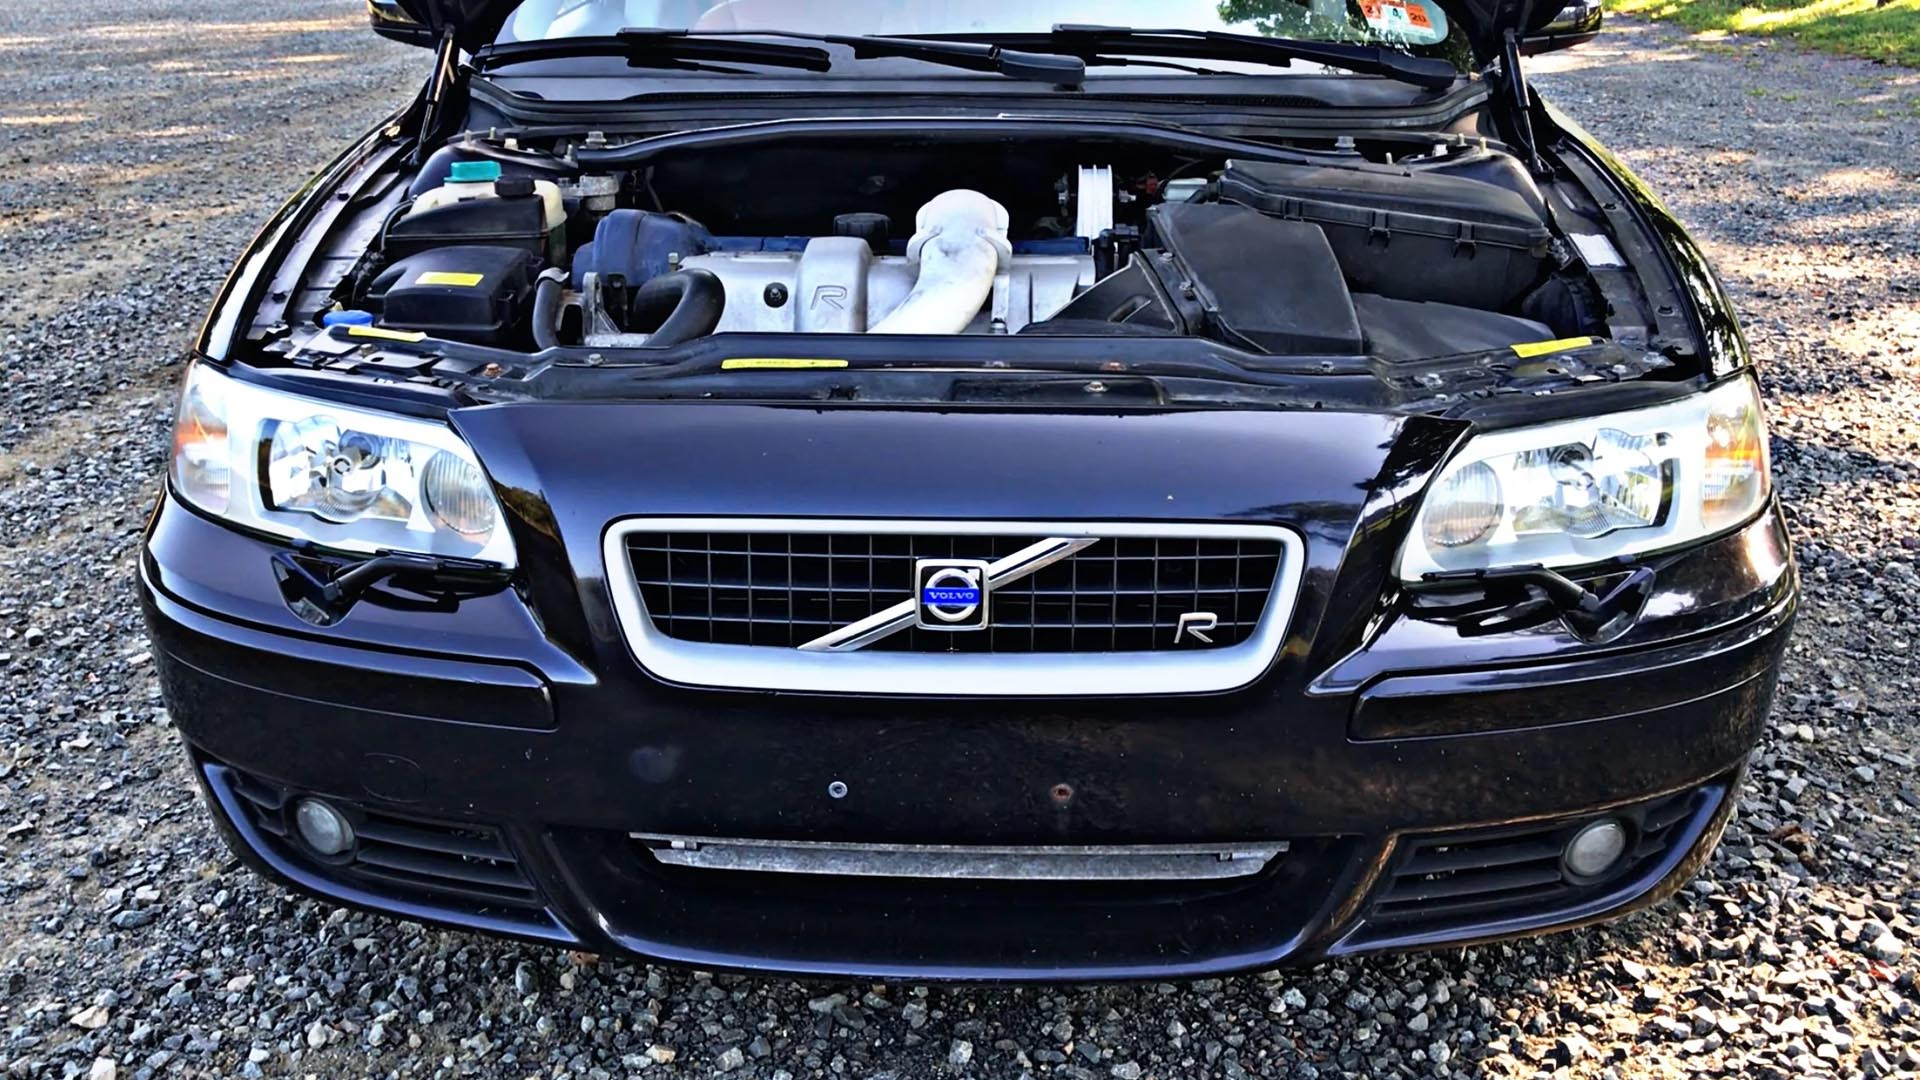 How To 'Stage Zero' Your Volvo V70R By Giving It A Thorough Tune-Up